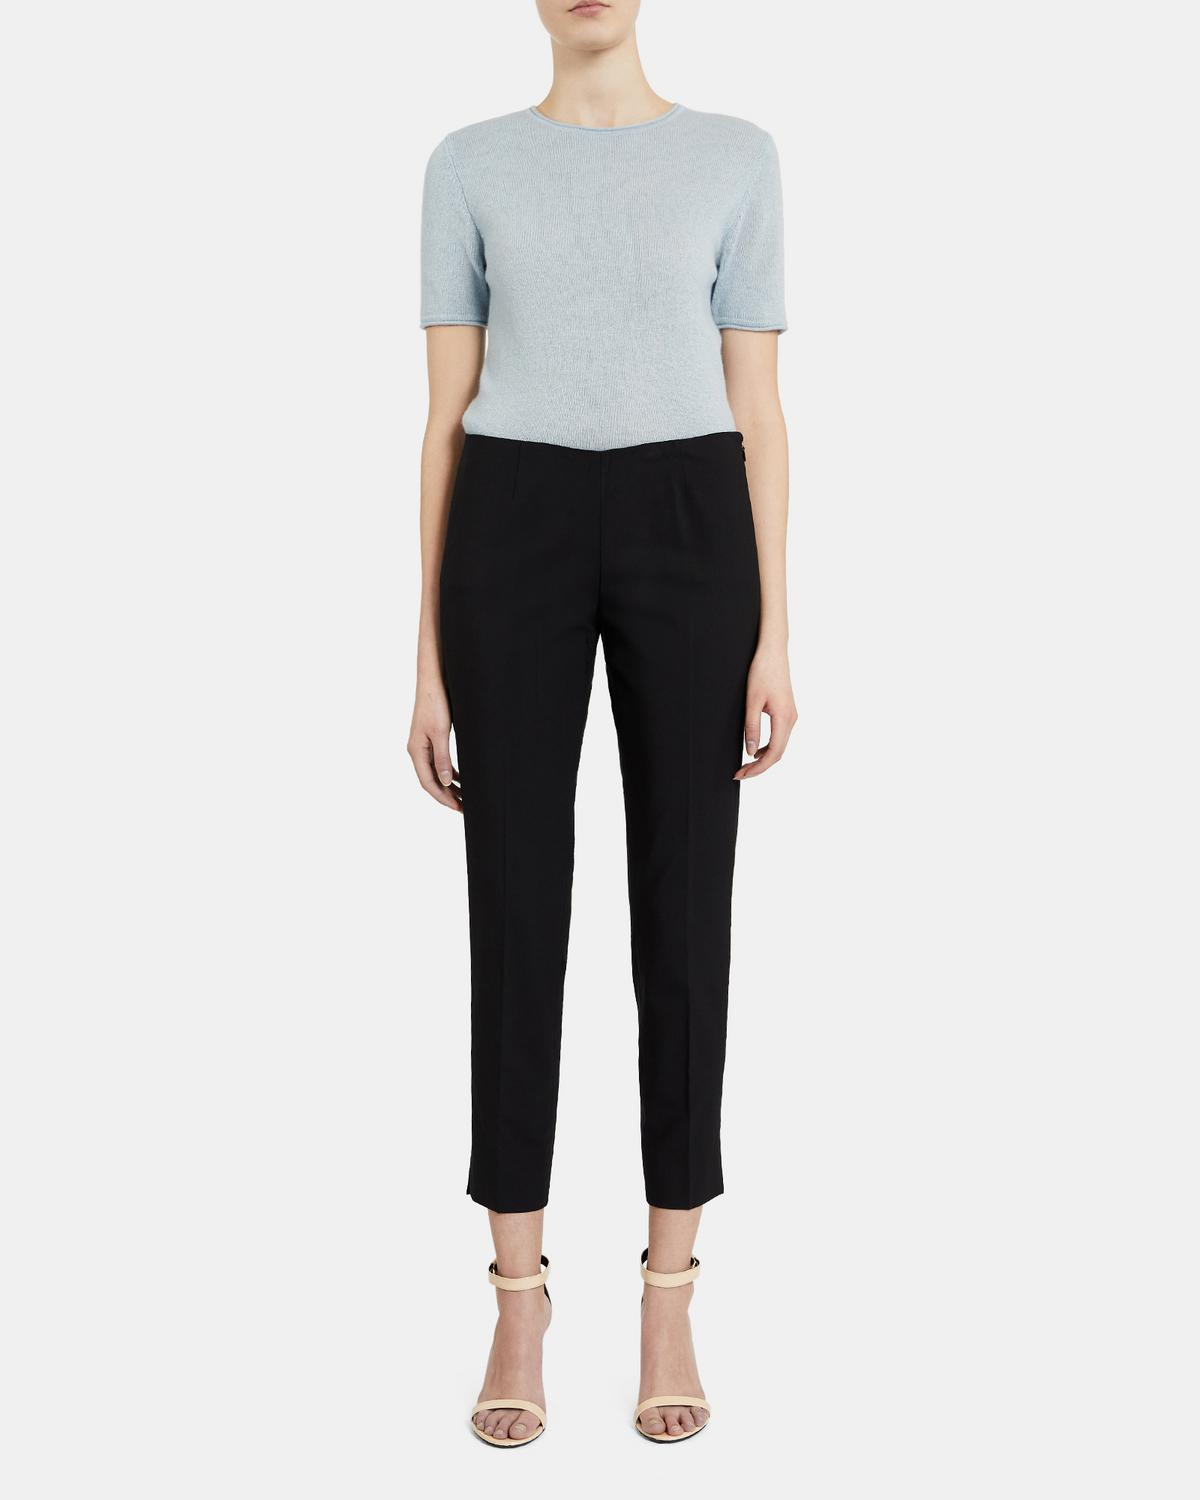 Belisa Pant In Stretch Wool